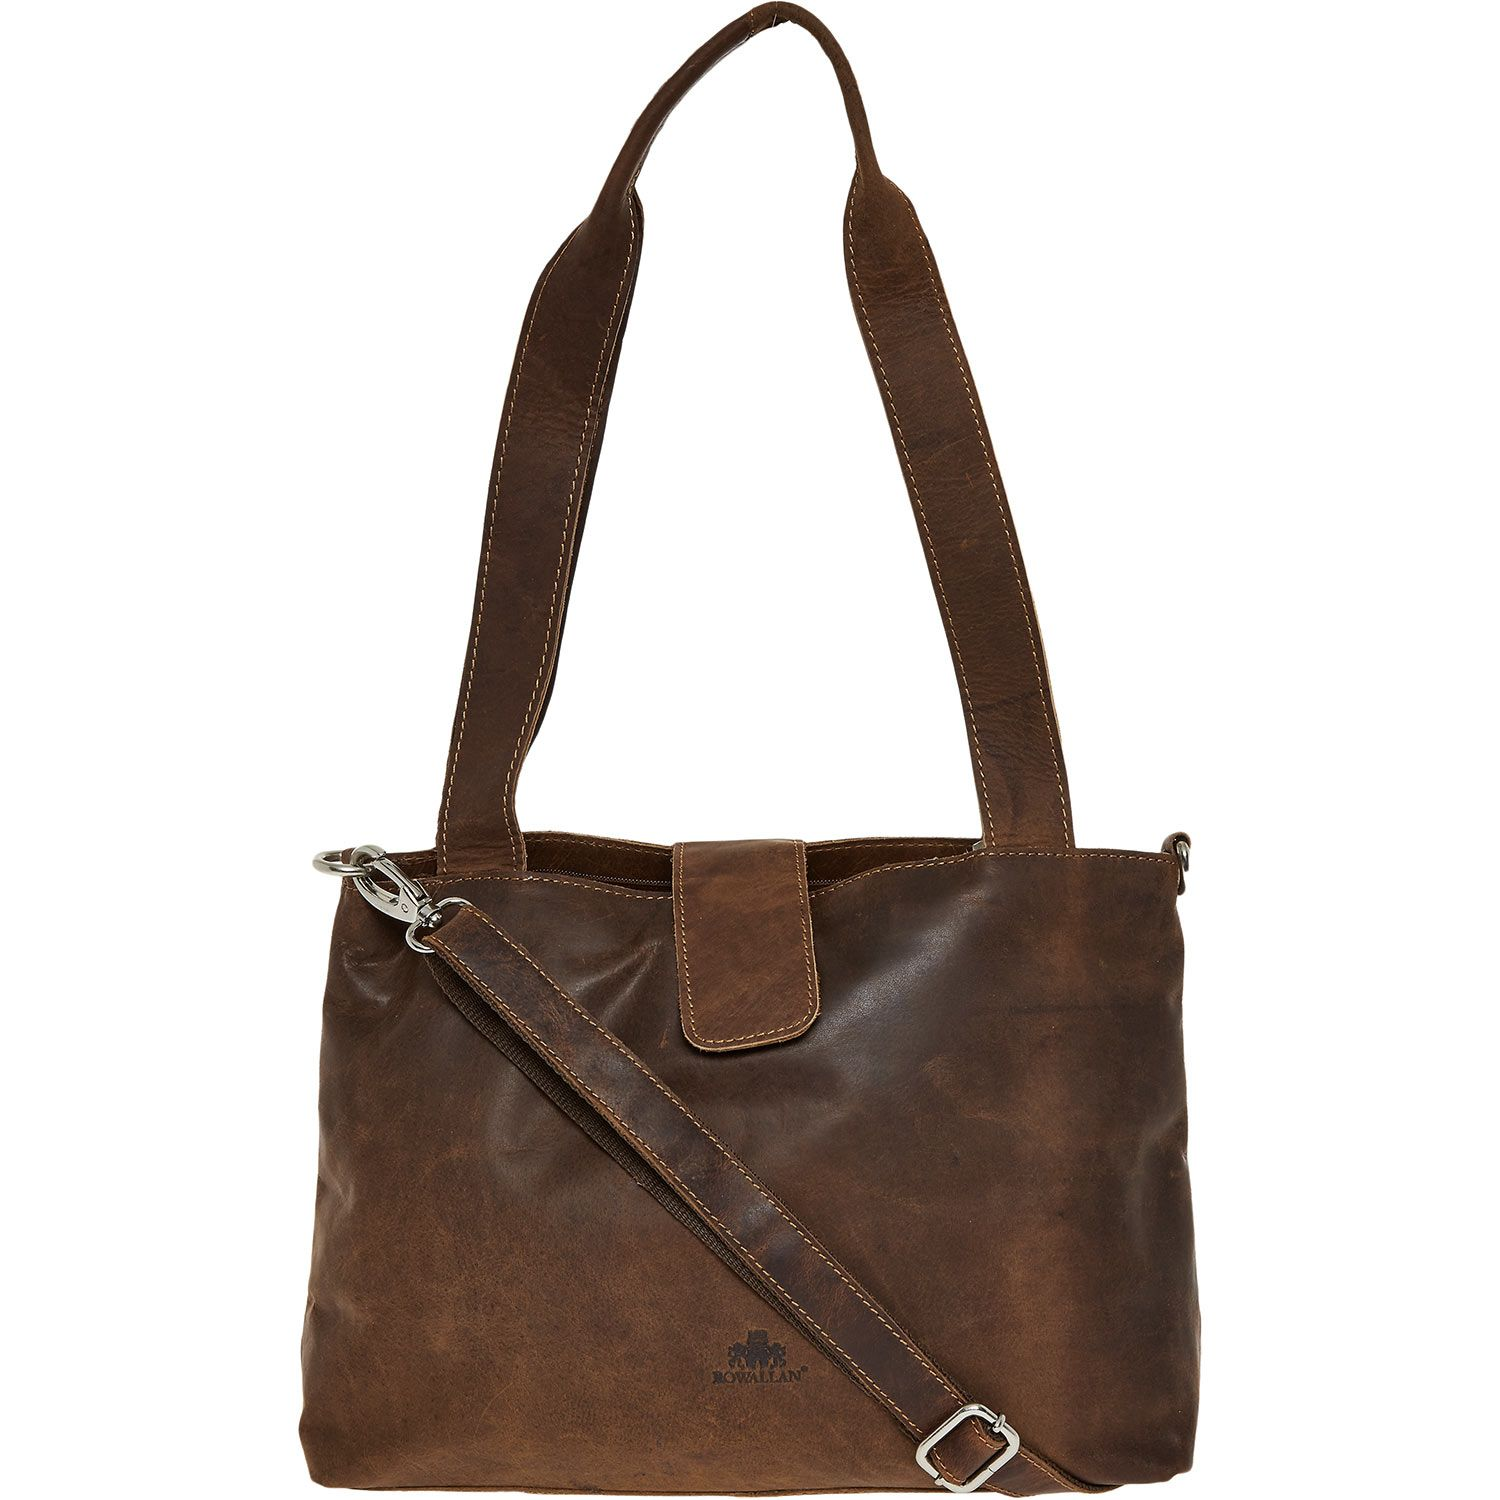 Rowallan Tan Leather Tote Bag Tk Ma